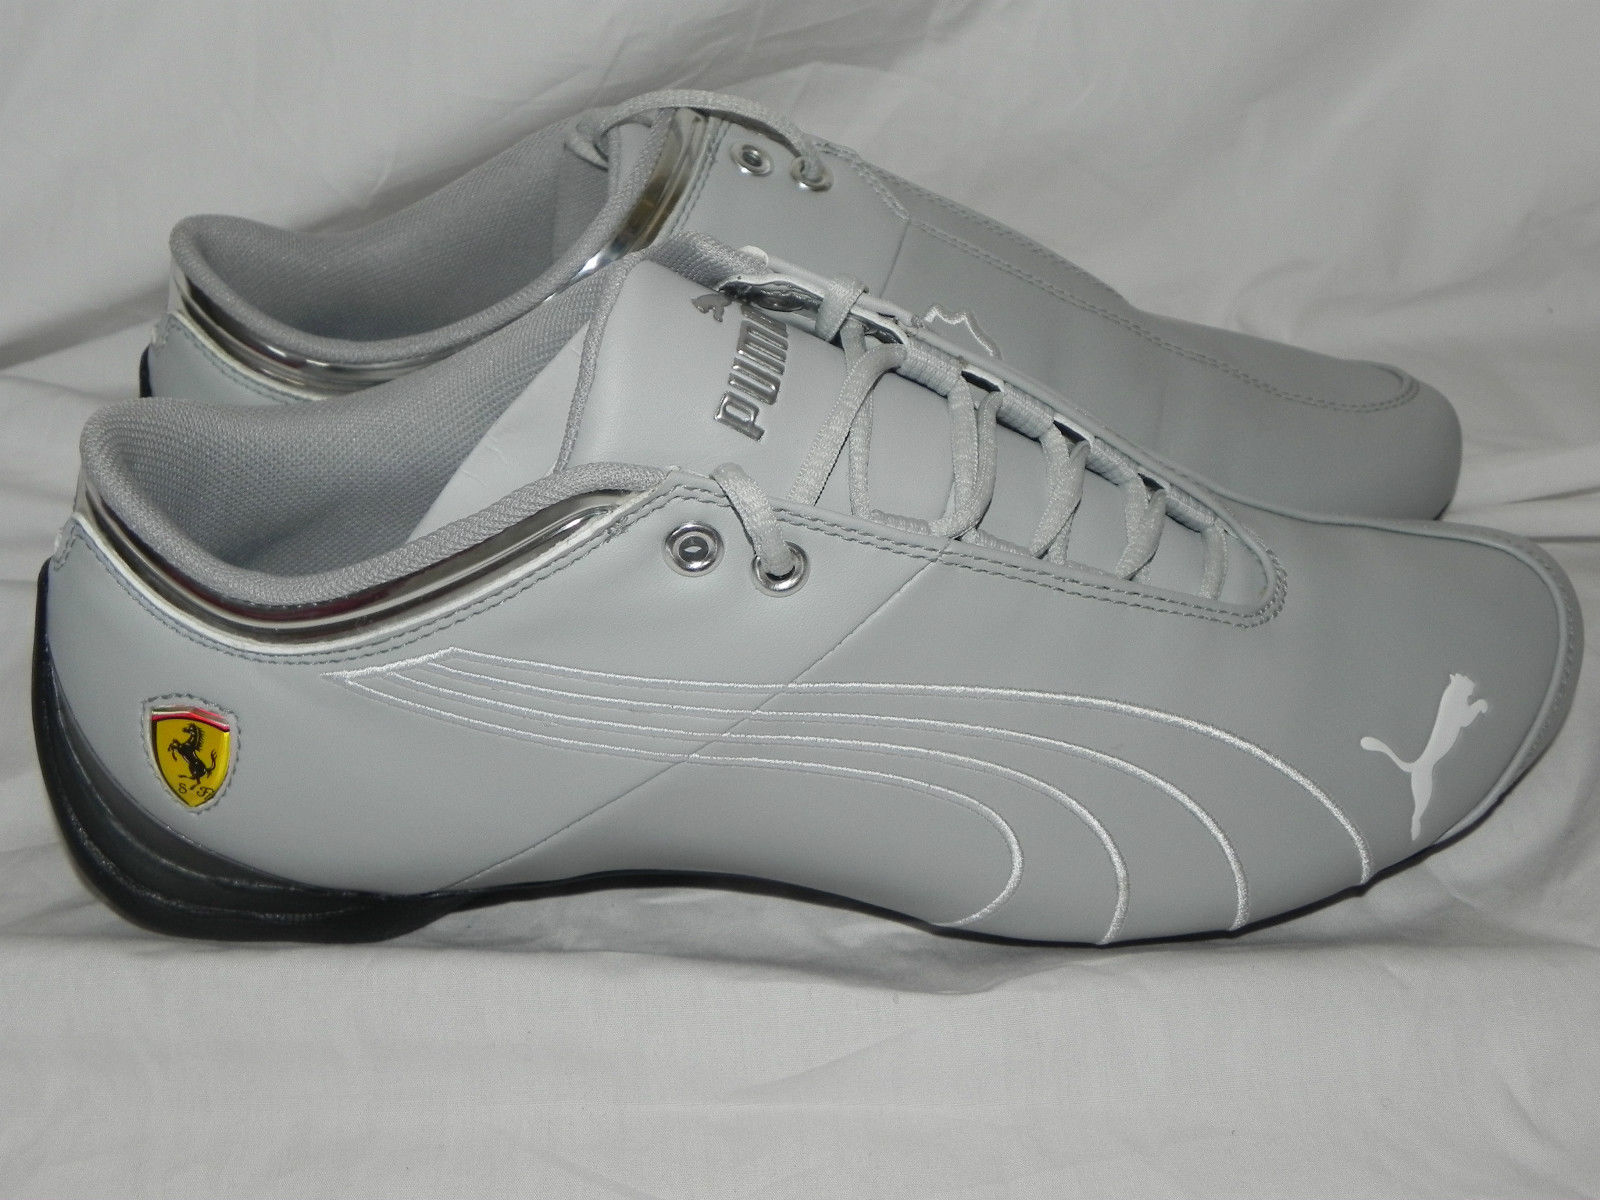 ab41640b New Puma Ferrari Men's Future Cat M1 Big Cat 1 30354701 | eBay ...